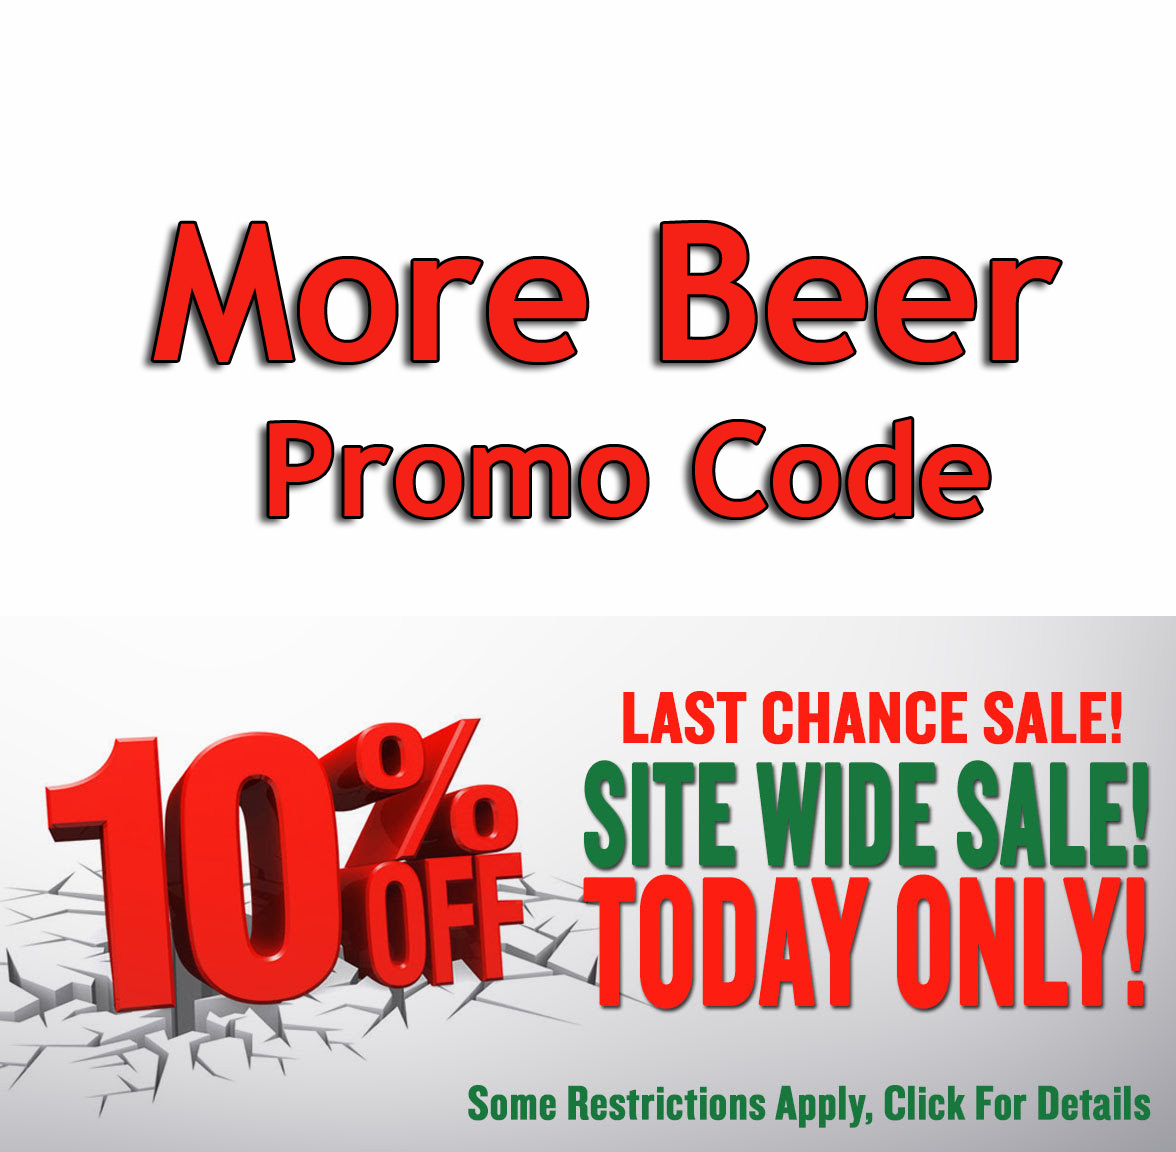 Save 10% Site Wide at MoreBeer! Coupon Code